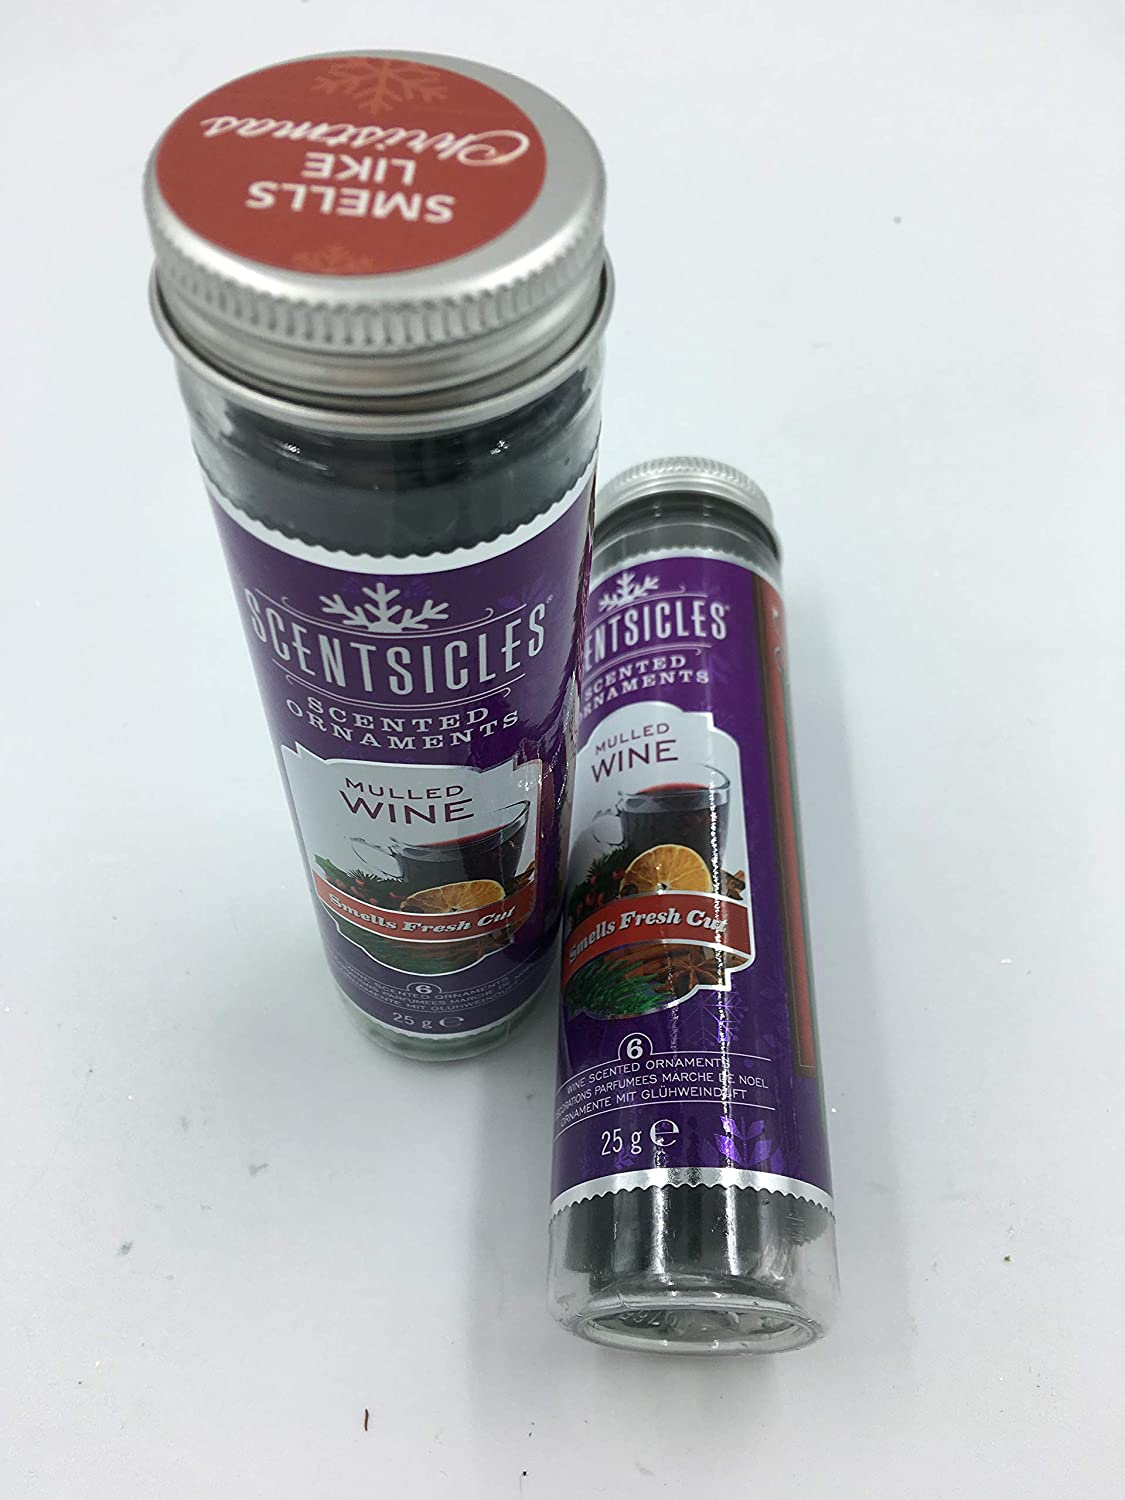 Christmas Tree Mulled Wine Scentsicles 2 Tubes of Scented Hanging Ornaments - Mulled Wine Scent Premir